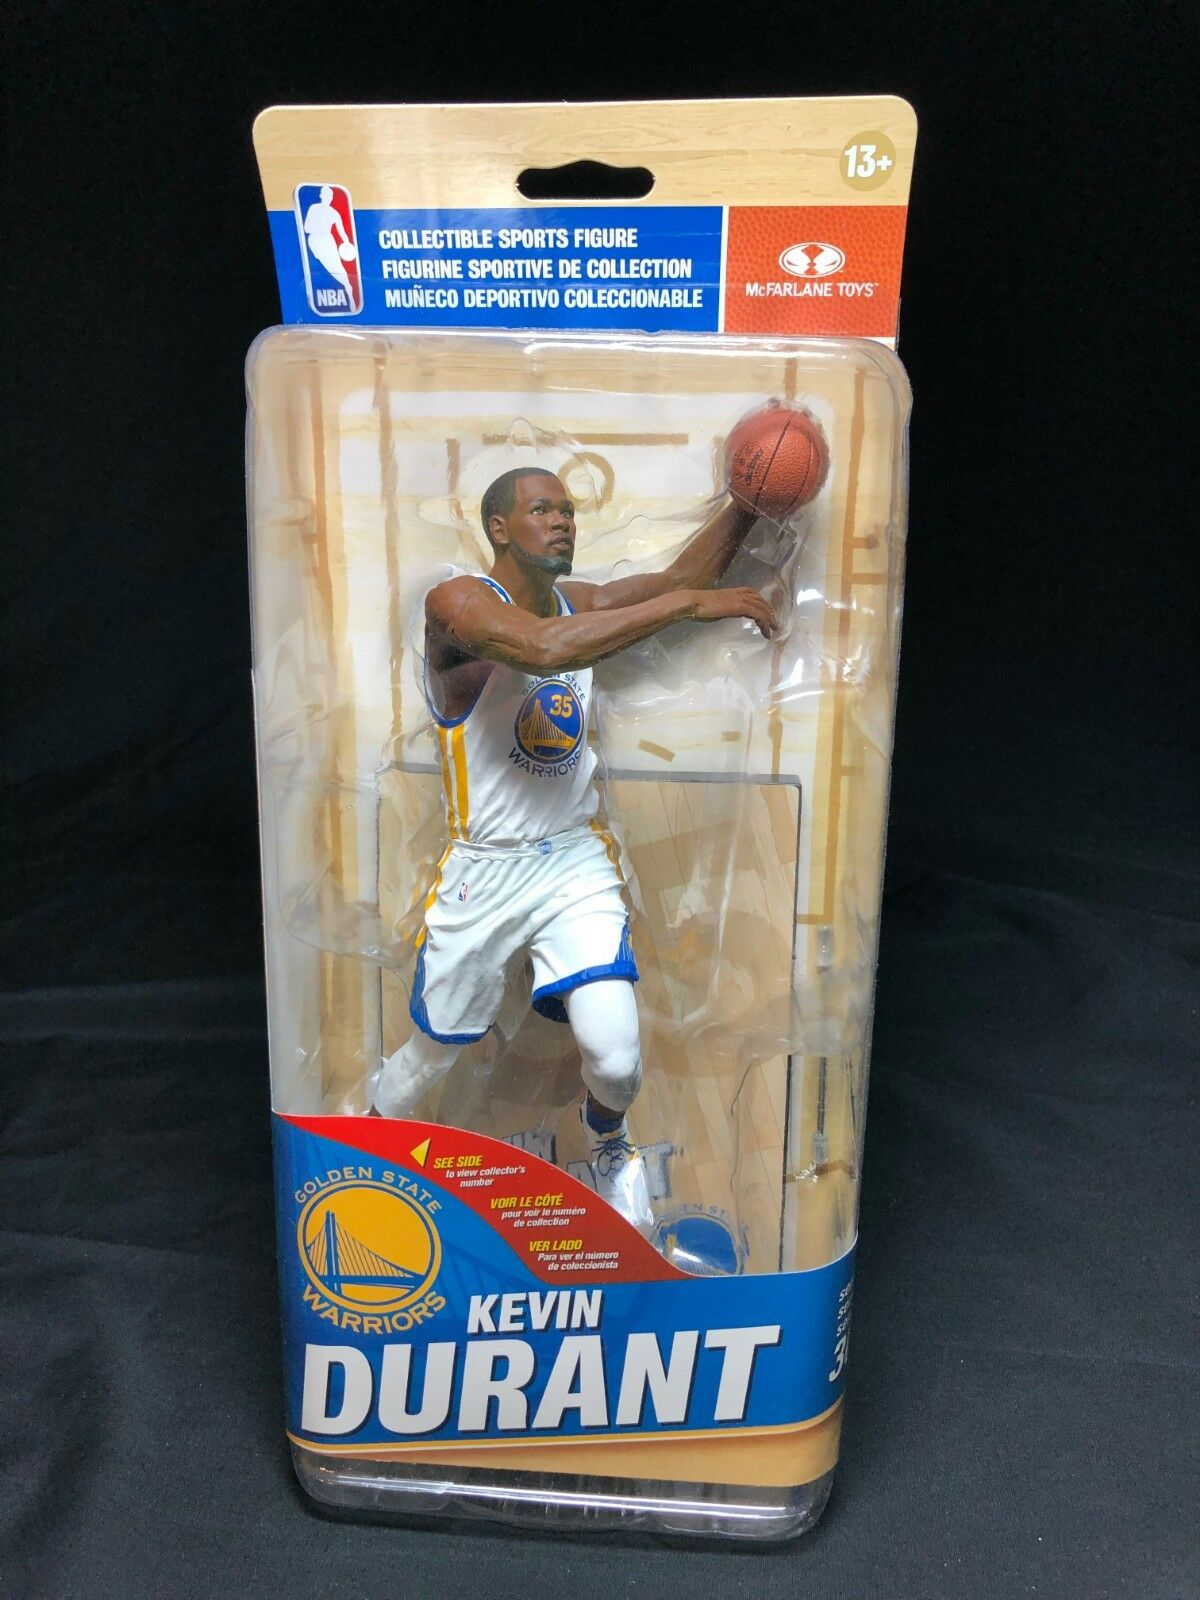 McFarlane NBA 30 Kevin Durant White Jersey Variant 1104 1500 golden State